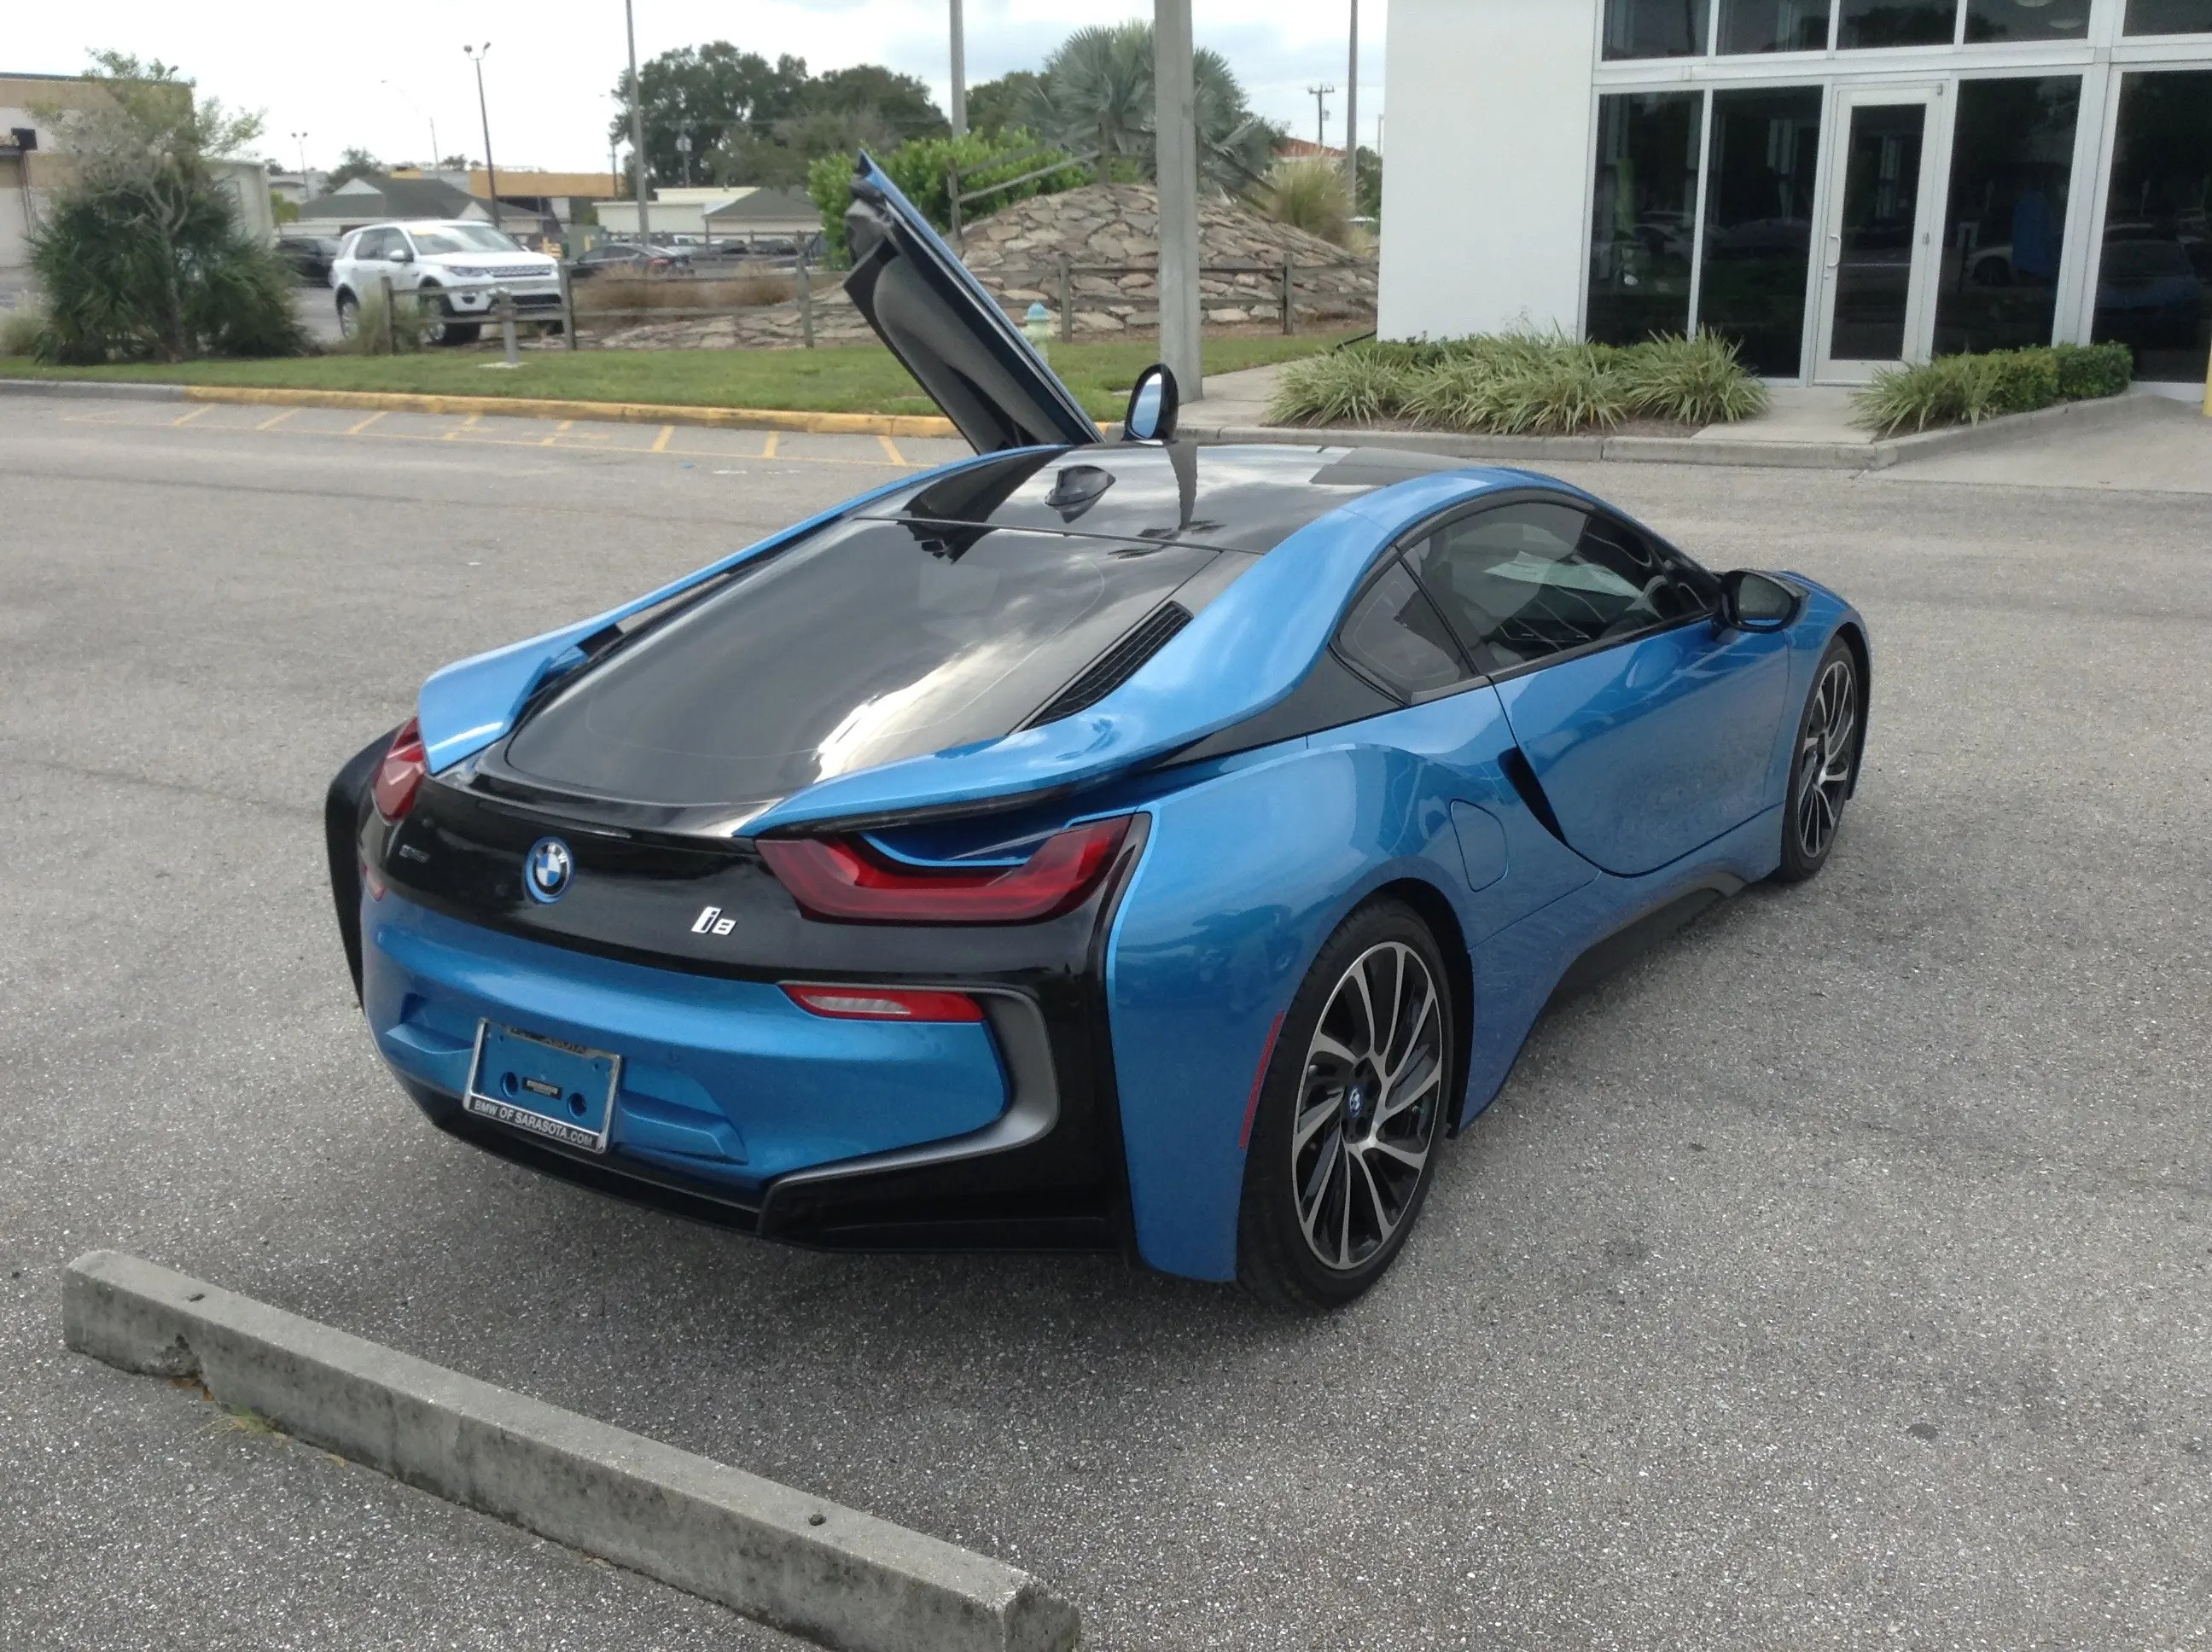 Despite The Improvement From Pure Electric Drive, However, The I8 Would  Still Basically Seat Two People, And The Car Was Not Design To Be Fully  Electric, ...